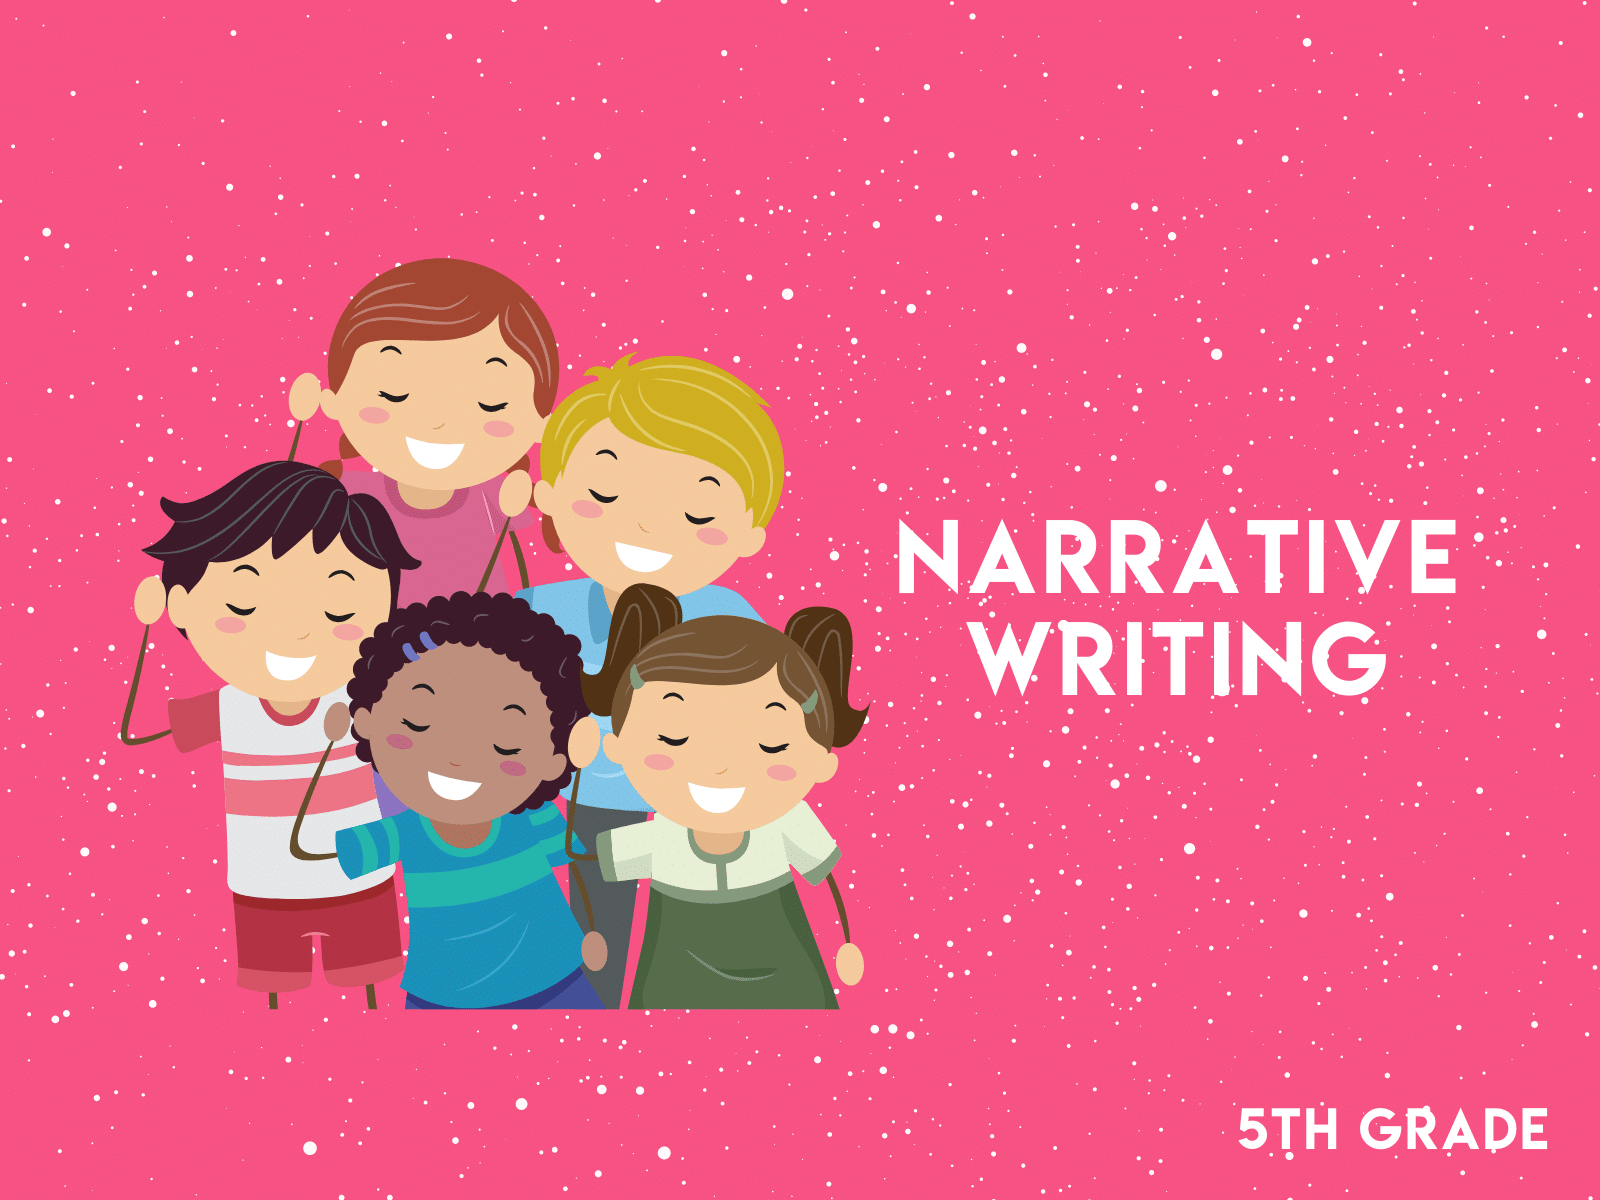 Narrative workbook for fifth grade writing practice.